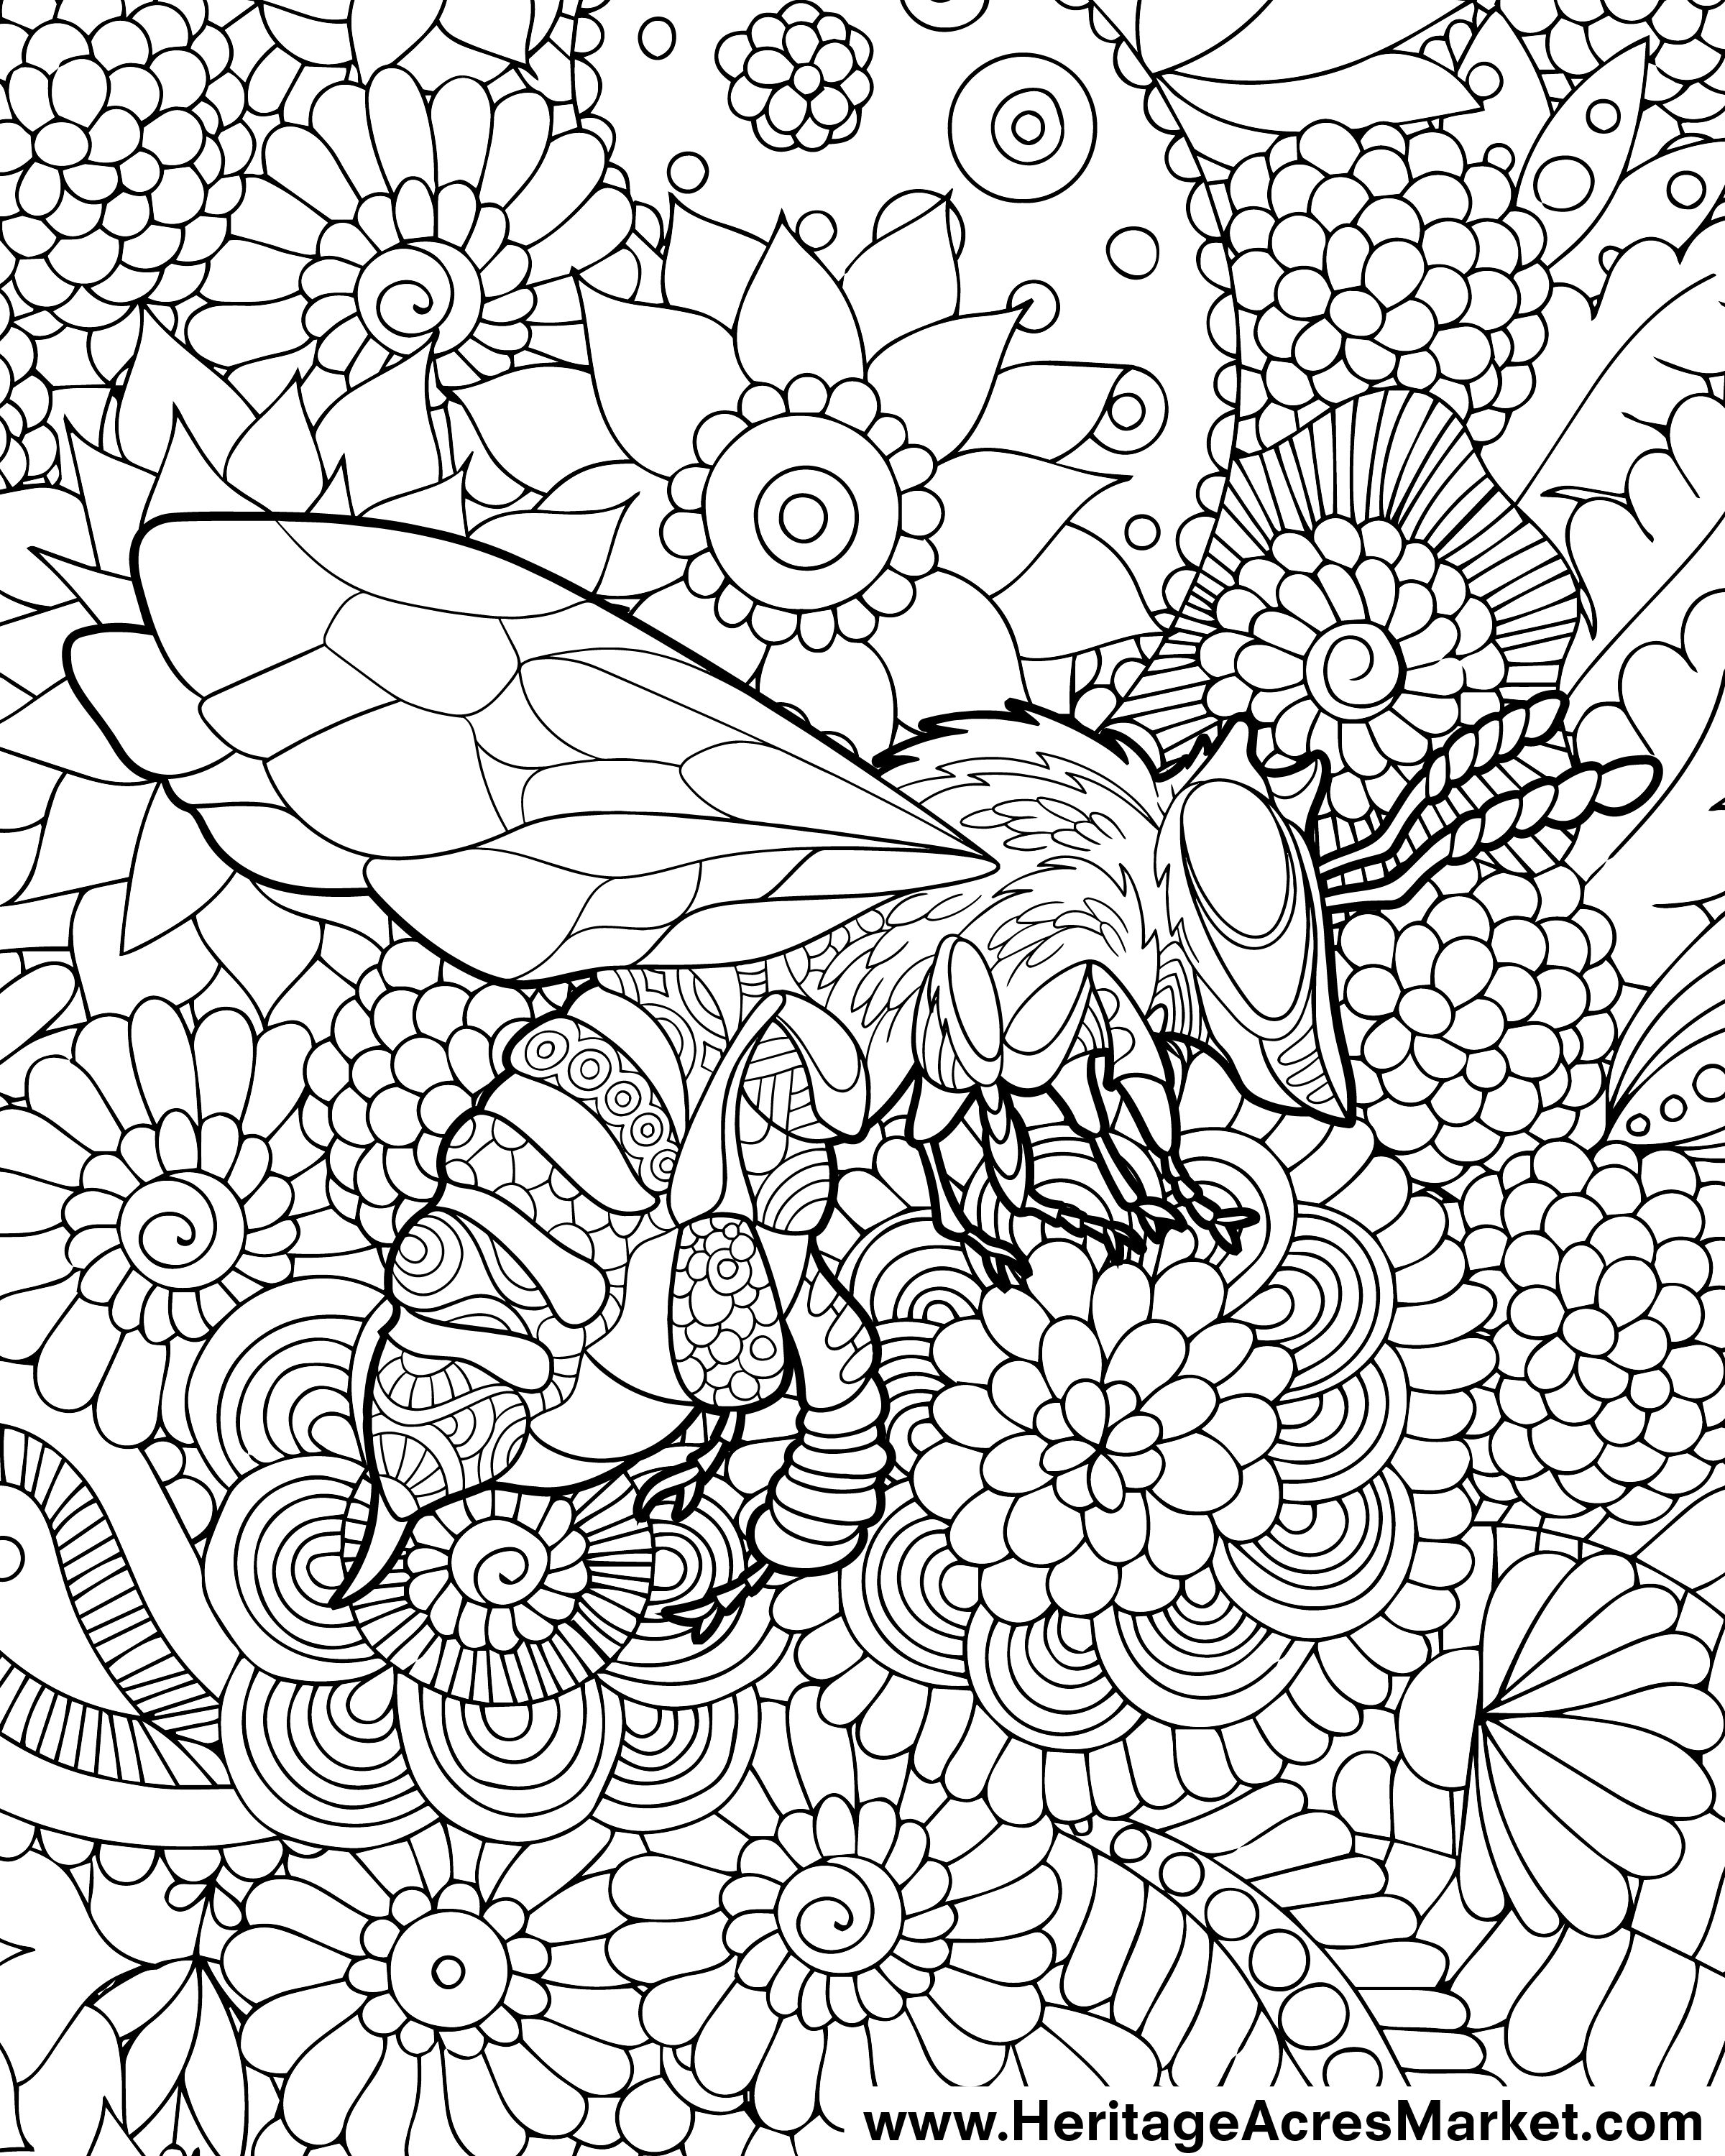 Free Bee Coloring Pages And More New High Quality Printable Page